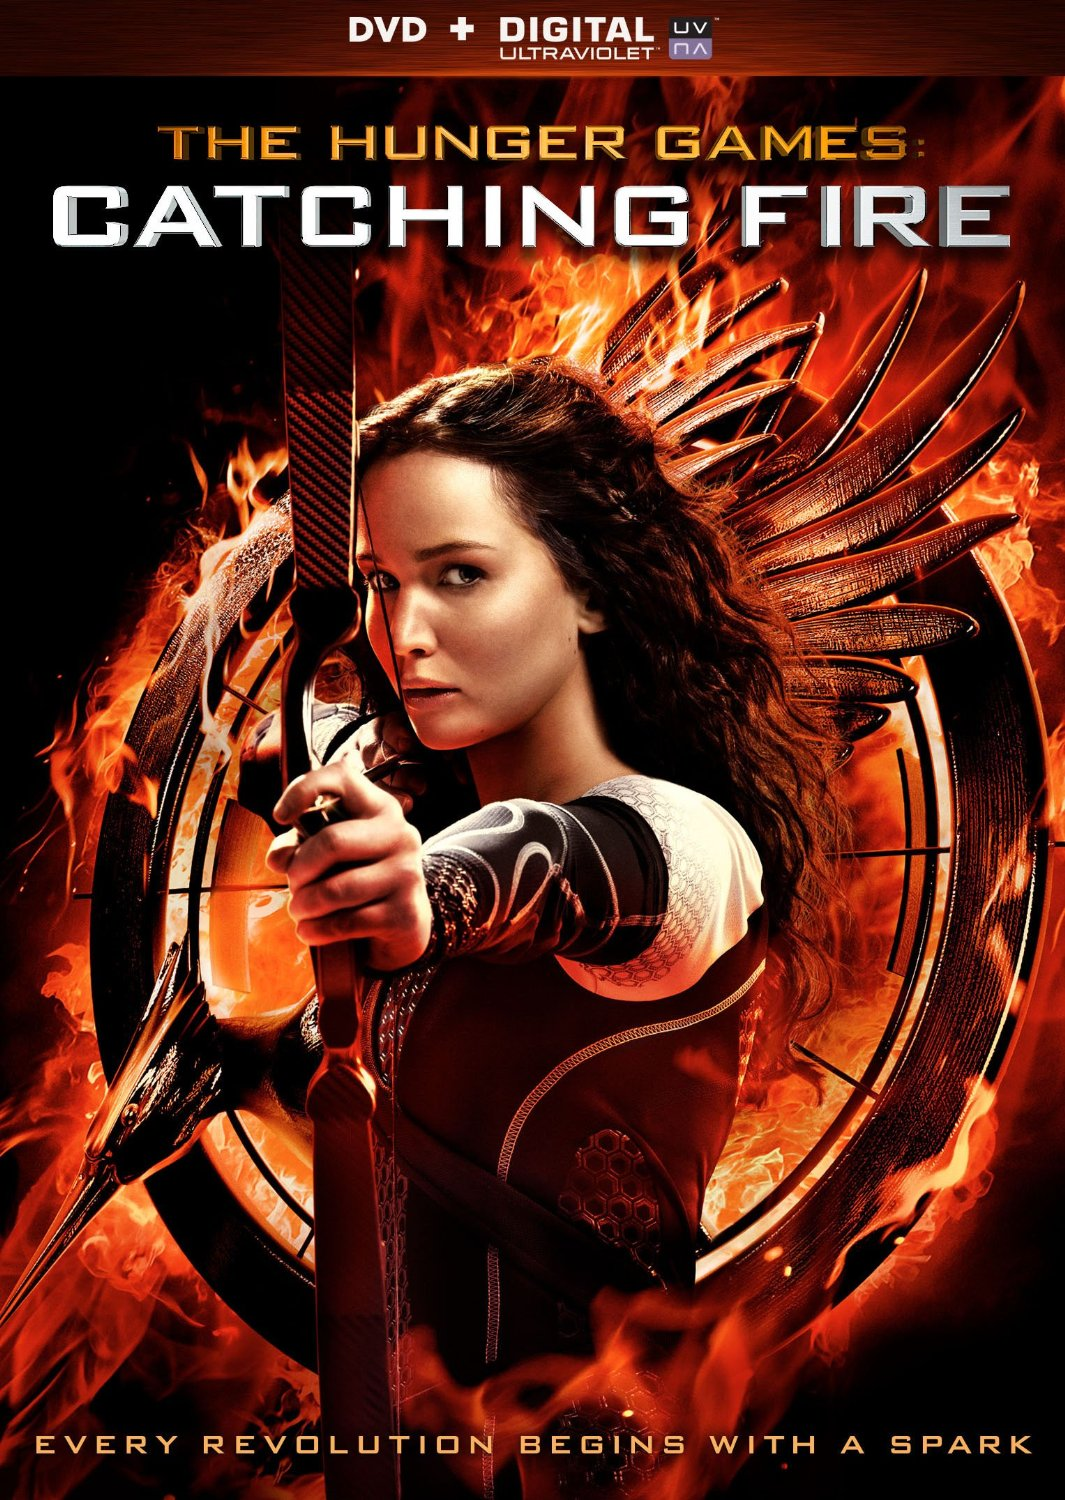 The Hunger Games: Catching Fire – New Movie Pictures Released